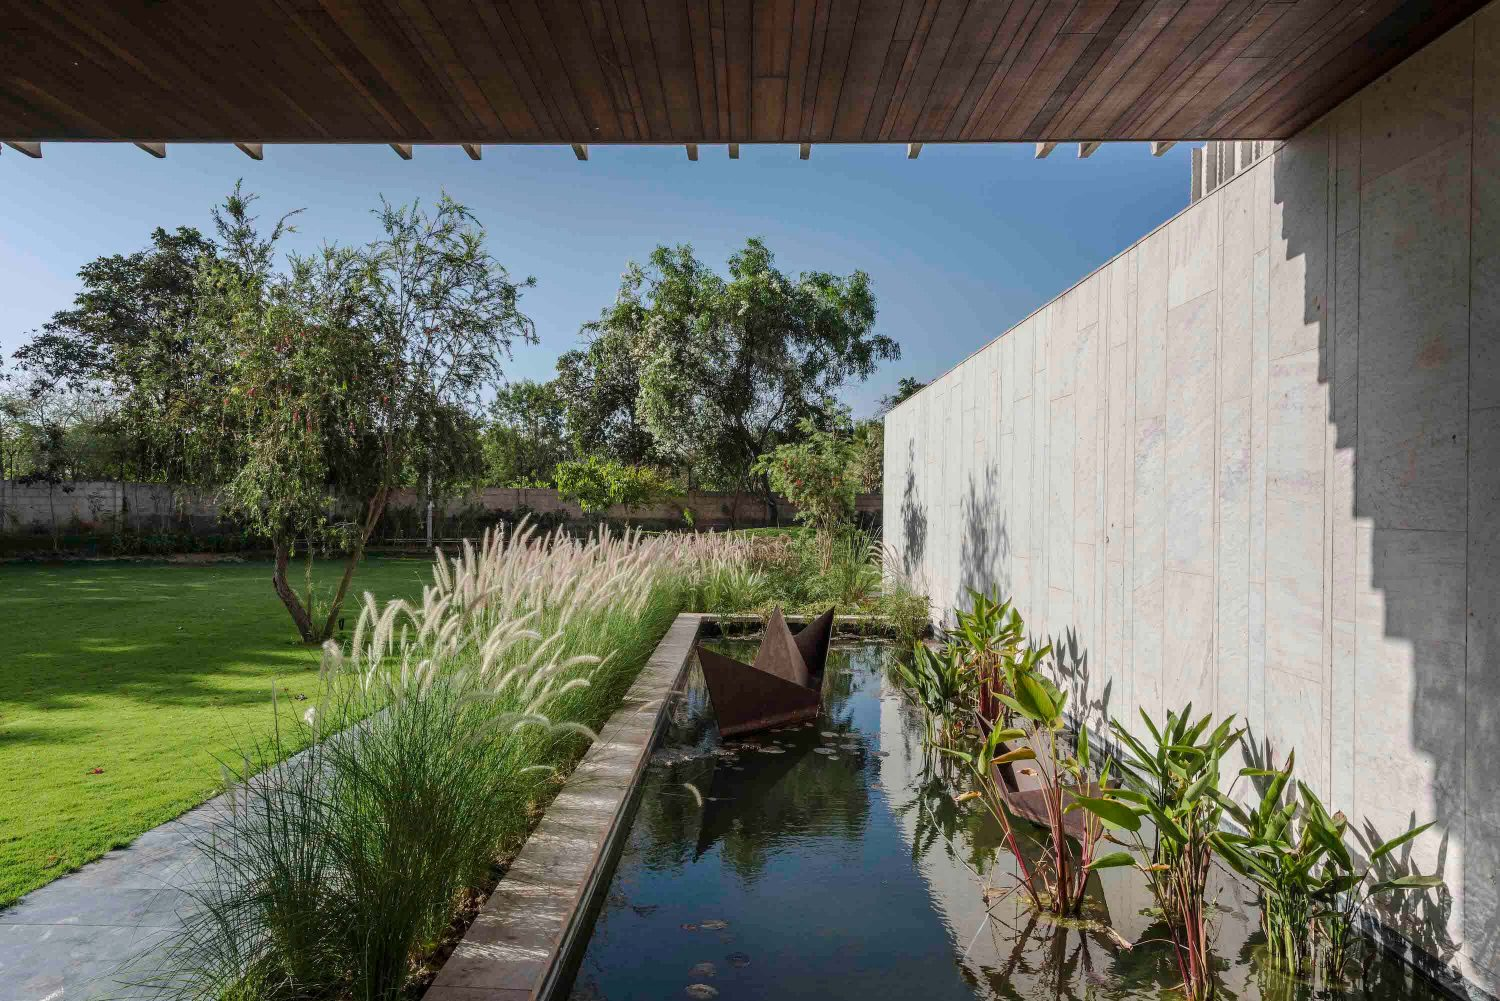 The House Of Secret Gardens by Spasm Design